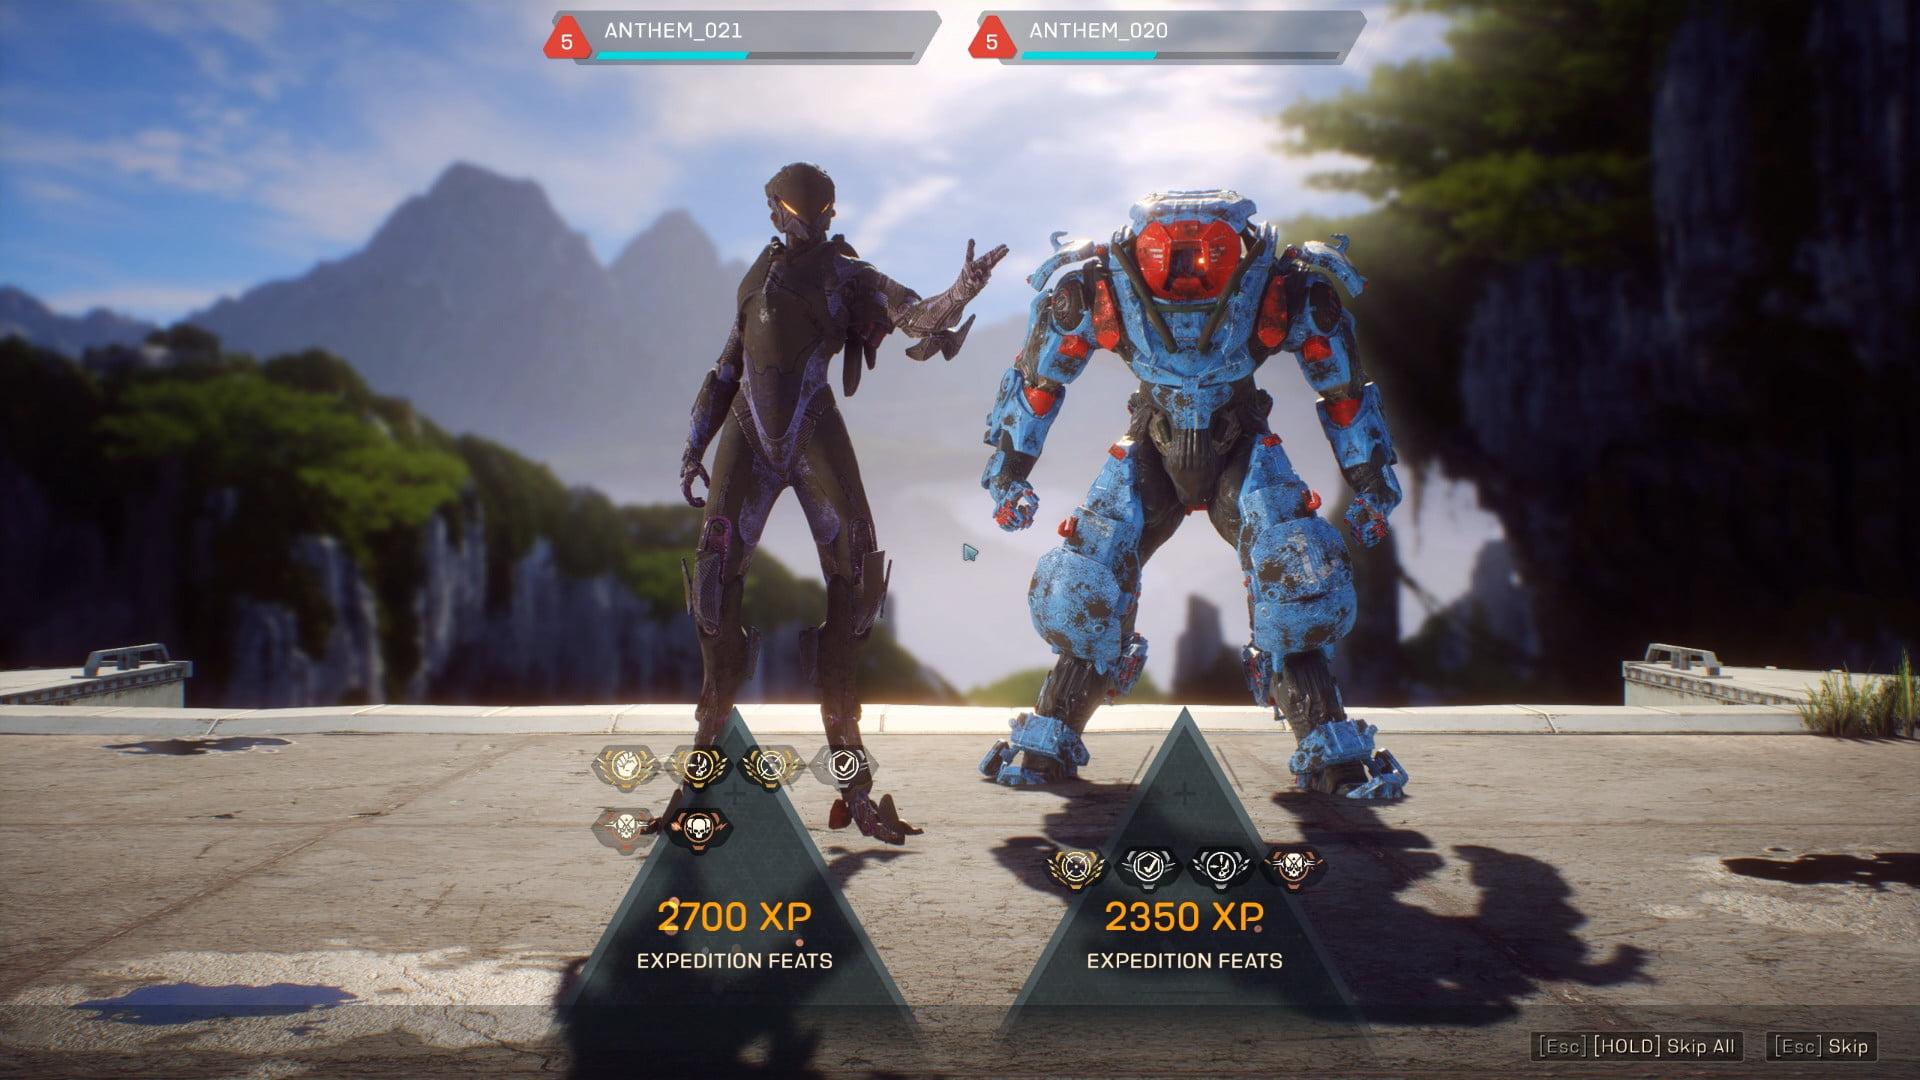 Anthem' Faces Rocky Launch After Mediocre Demo Sours Players